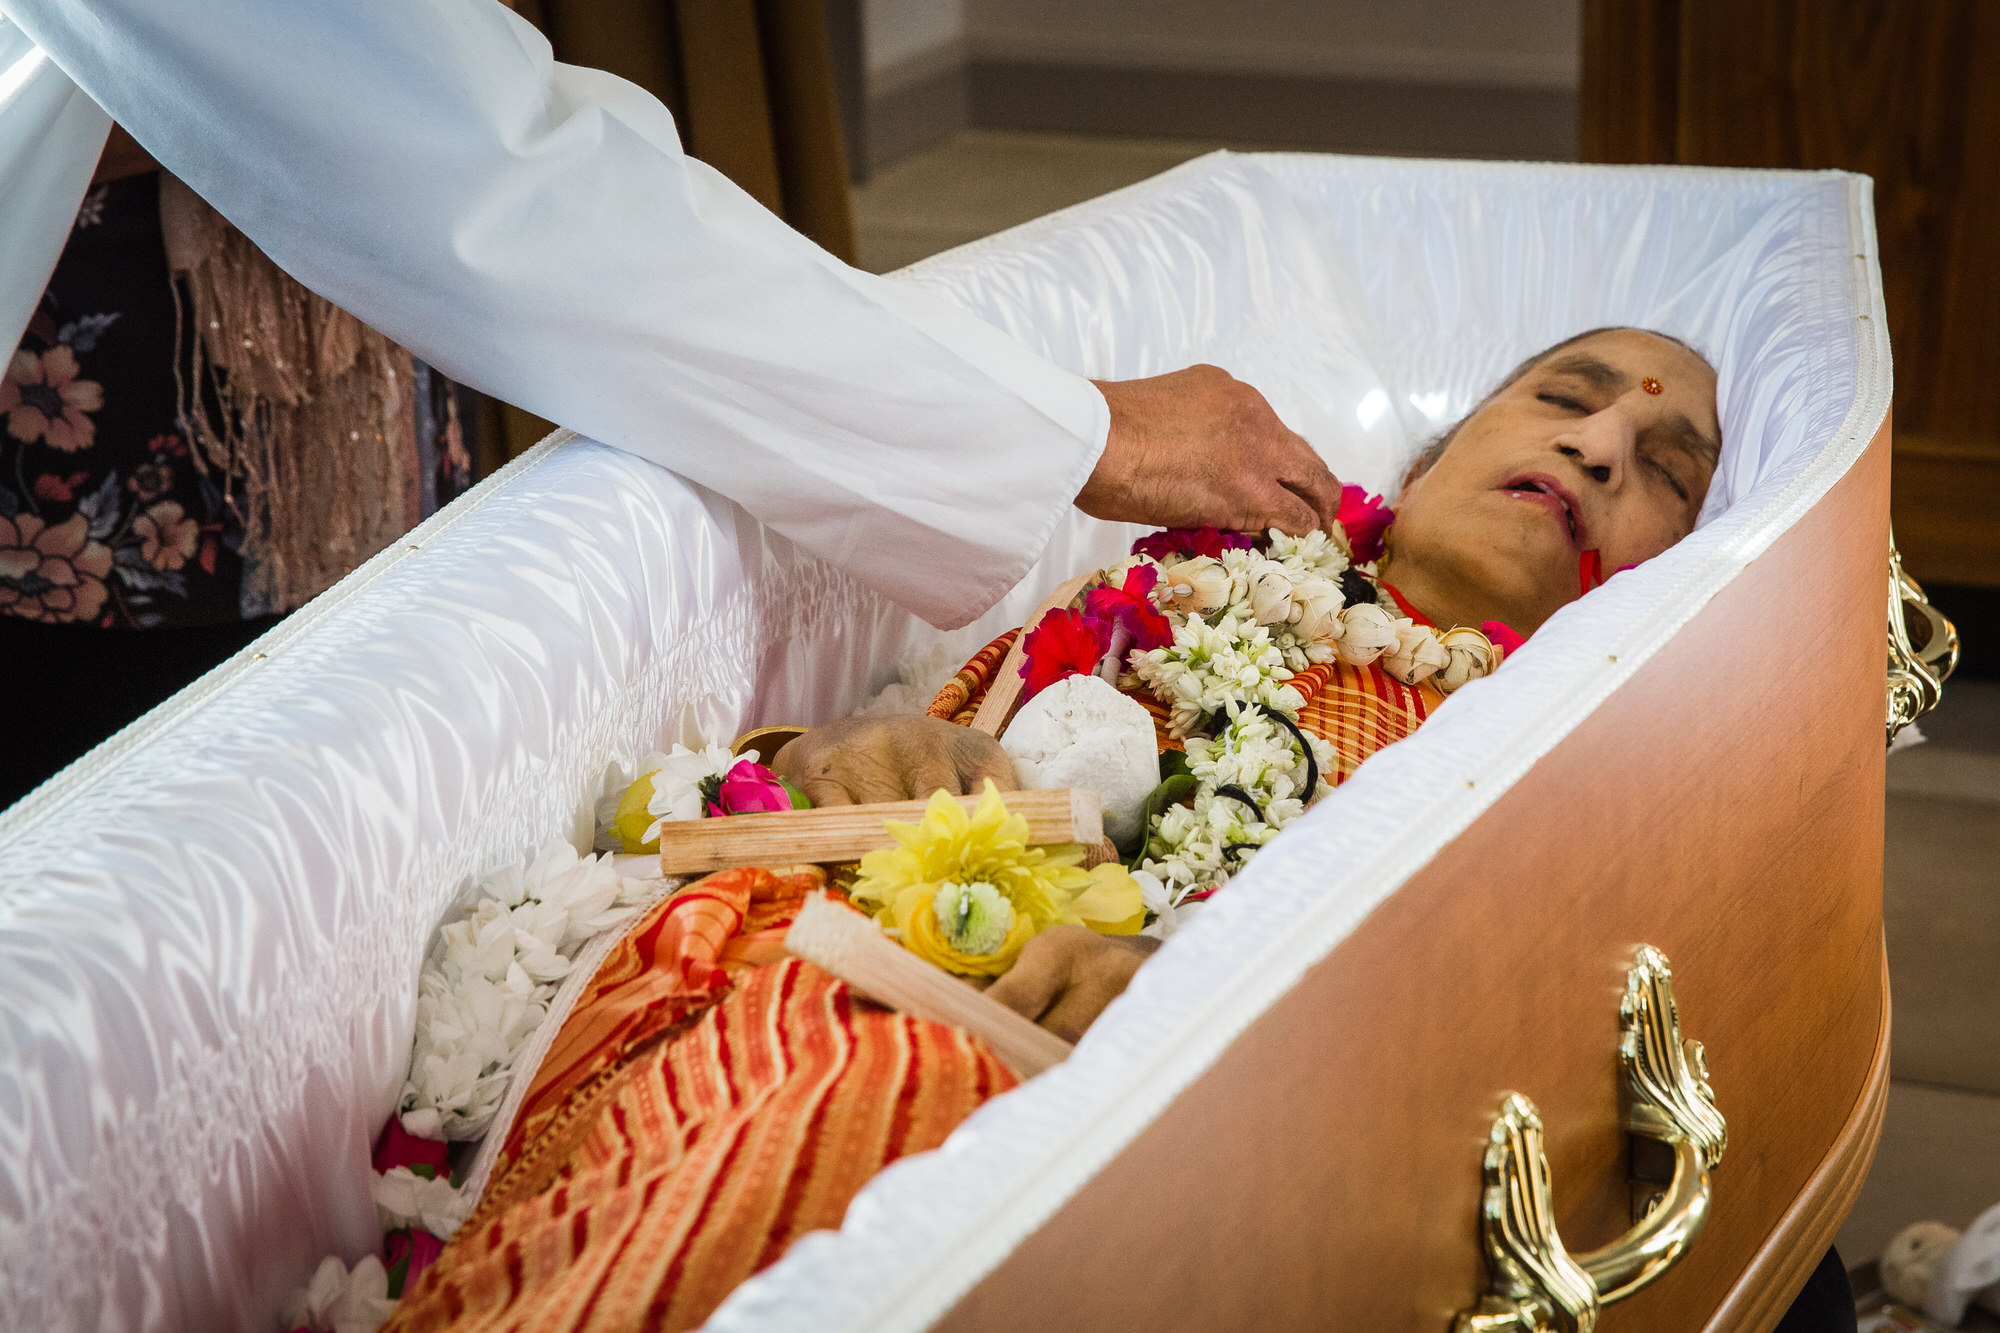 Thorncliffe Crematorium Barrow-in-Funrness Funeral Photographer, Hindu Funeral Photography